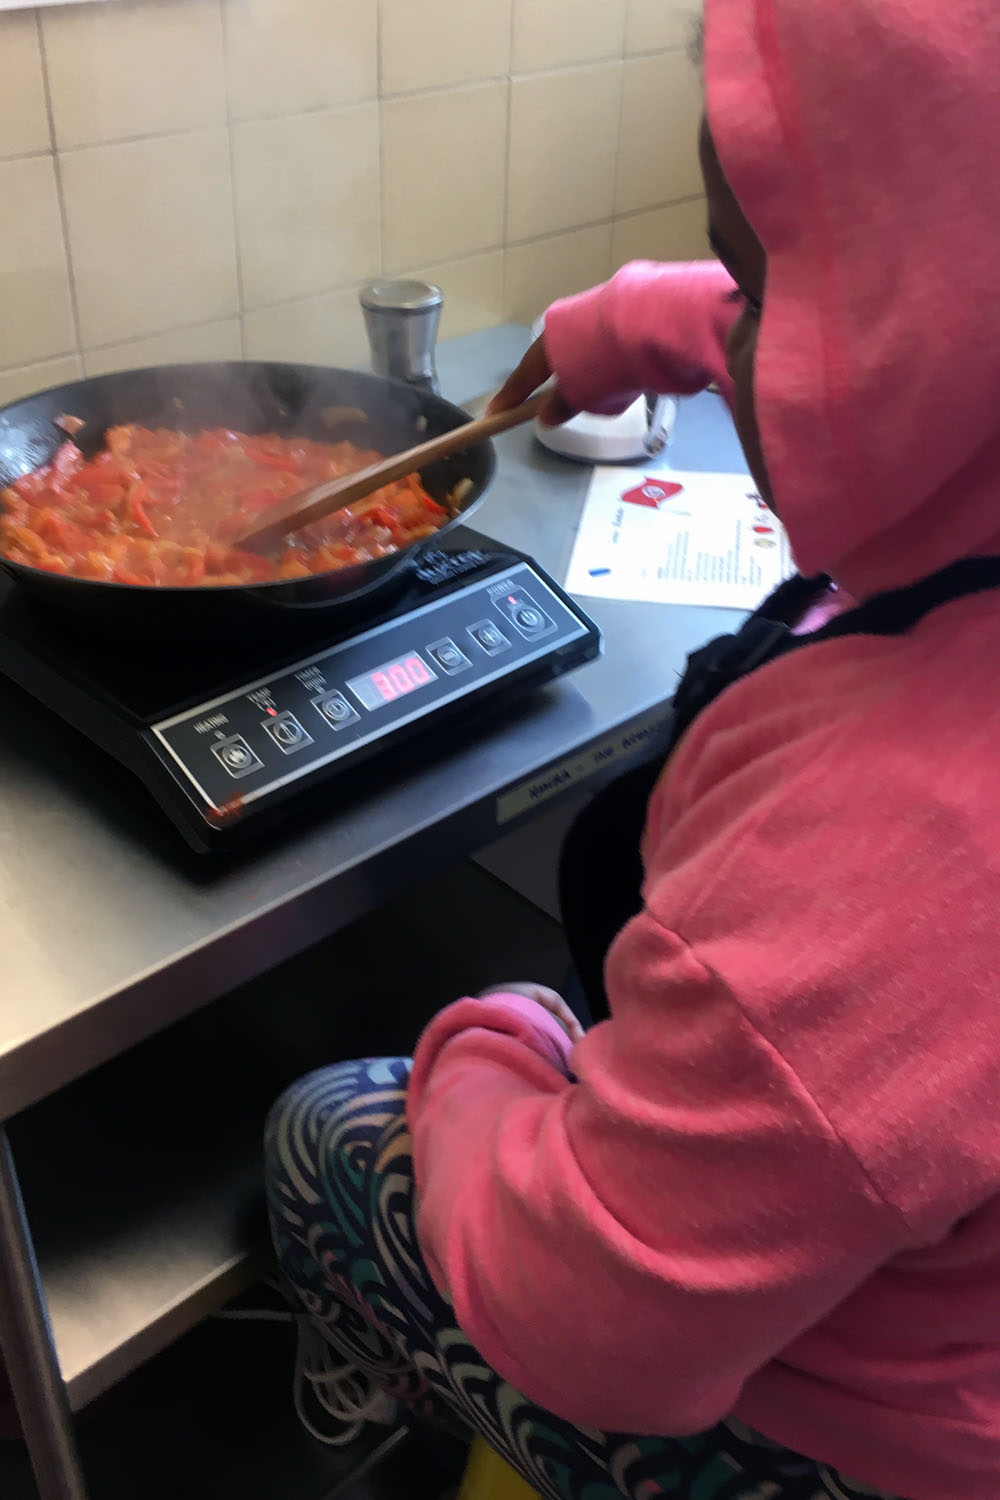 This student got a stool and practiced patience and care as the  shakshuka  cooked.